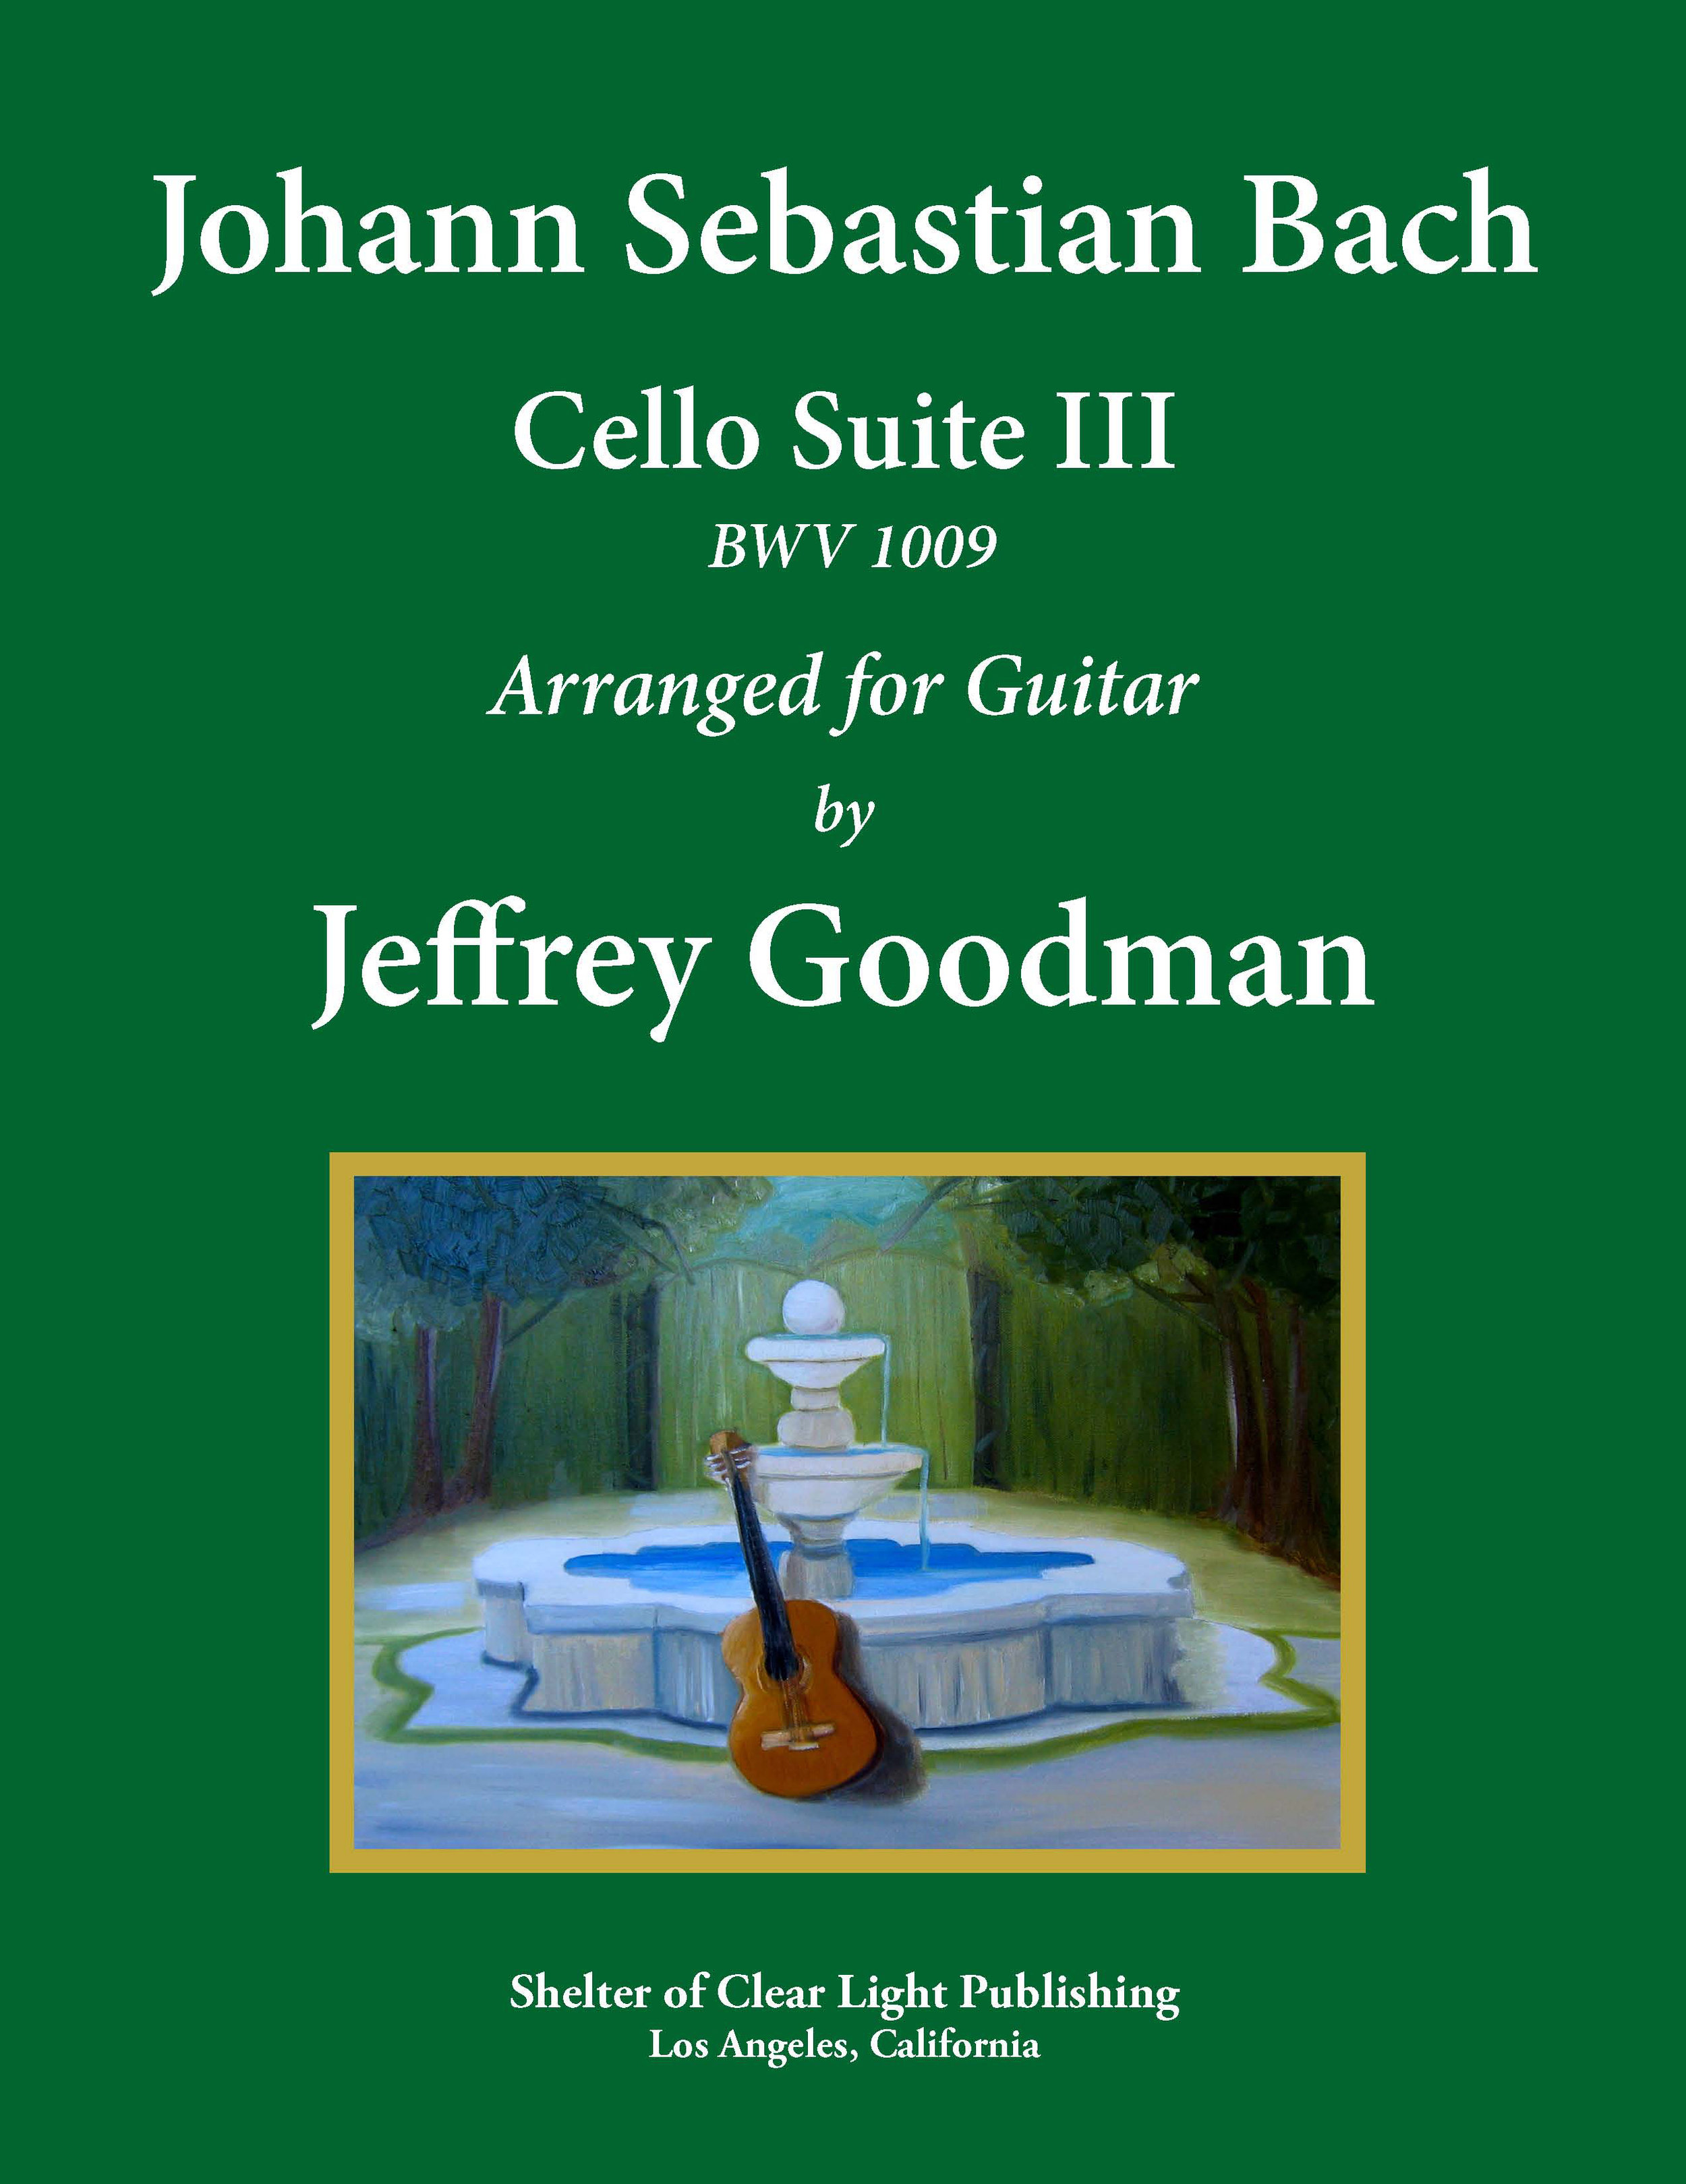 Bach Cello Suite III cover for JGM website .jpg